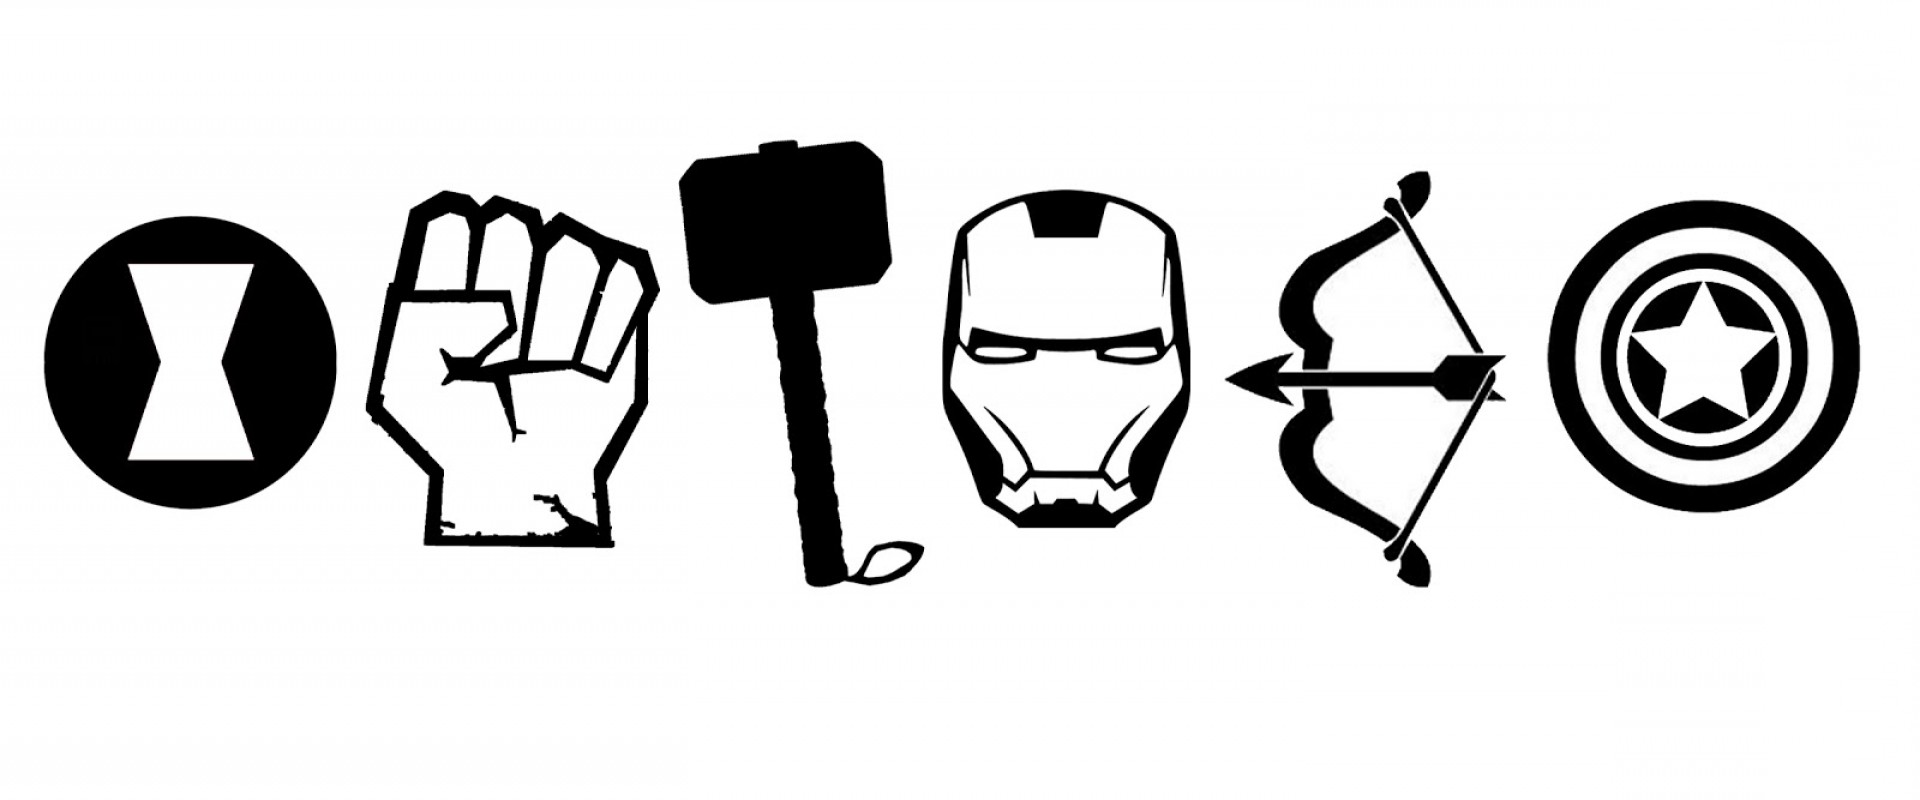 Avengers Clipart Black And White.